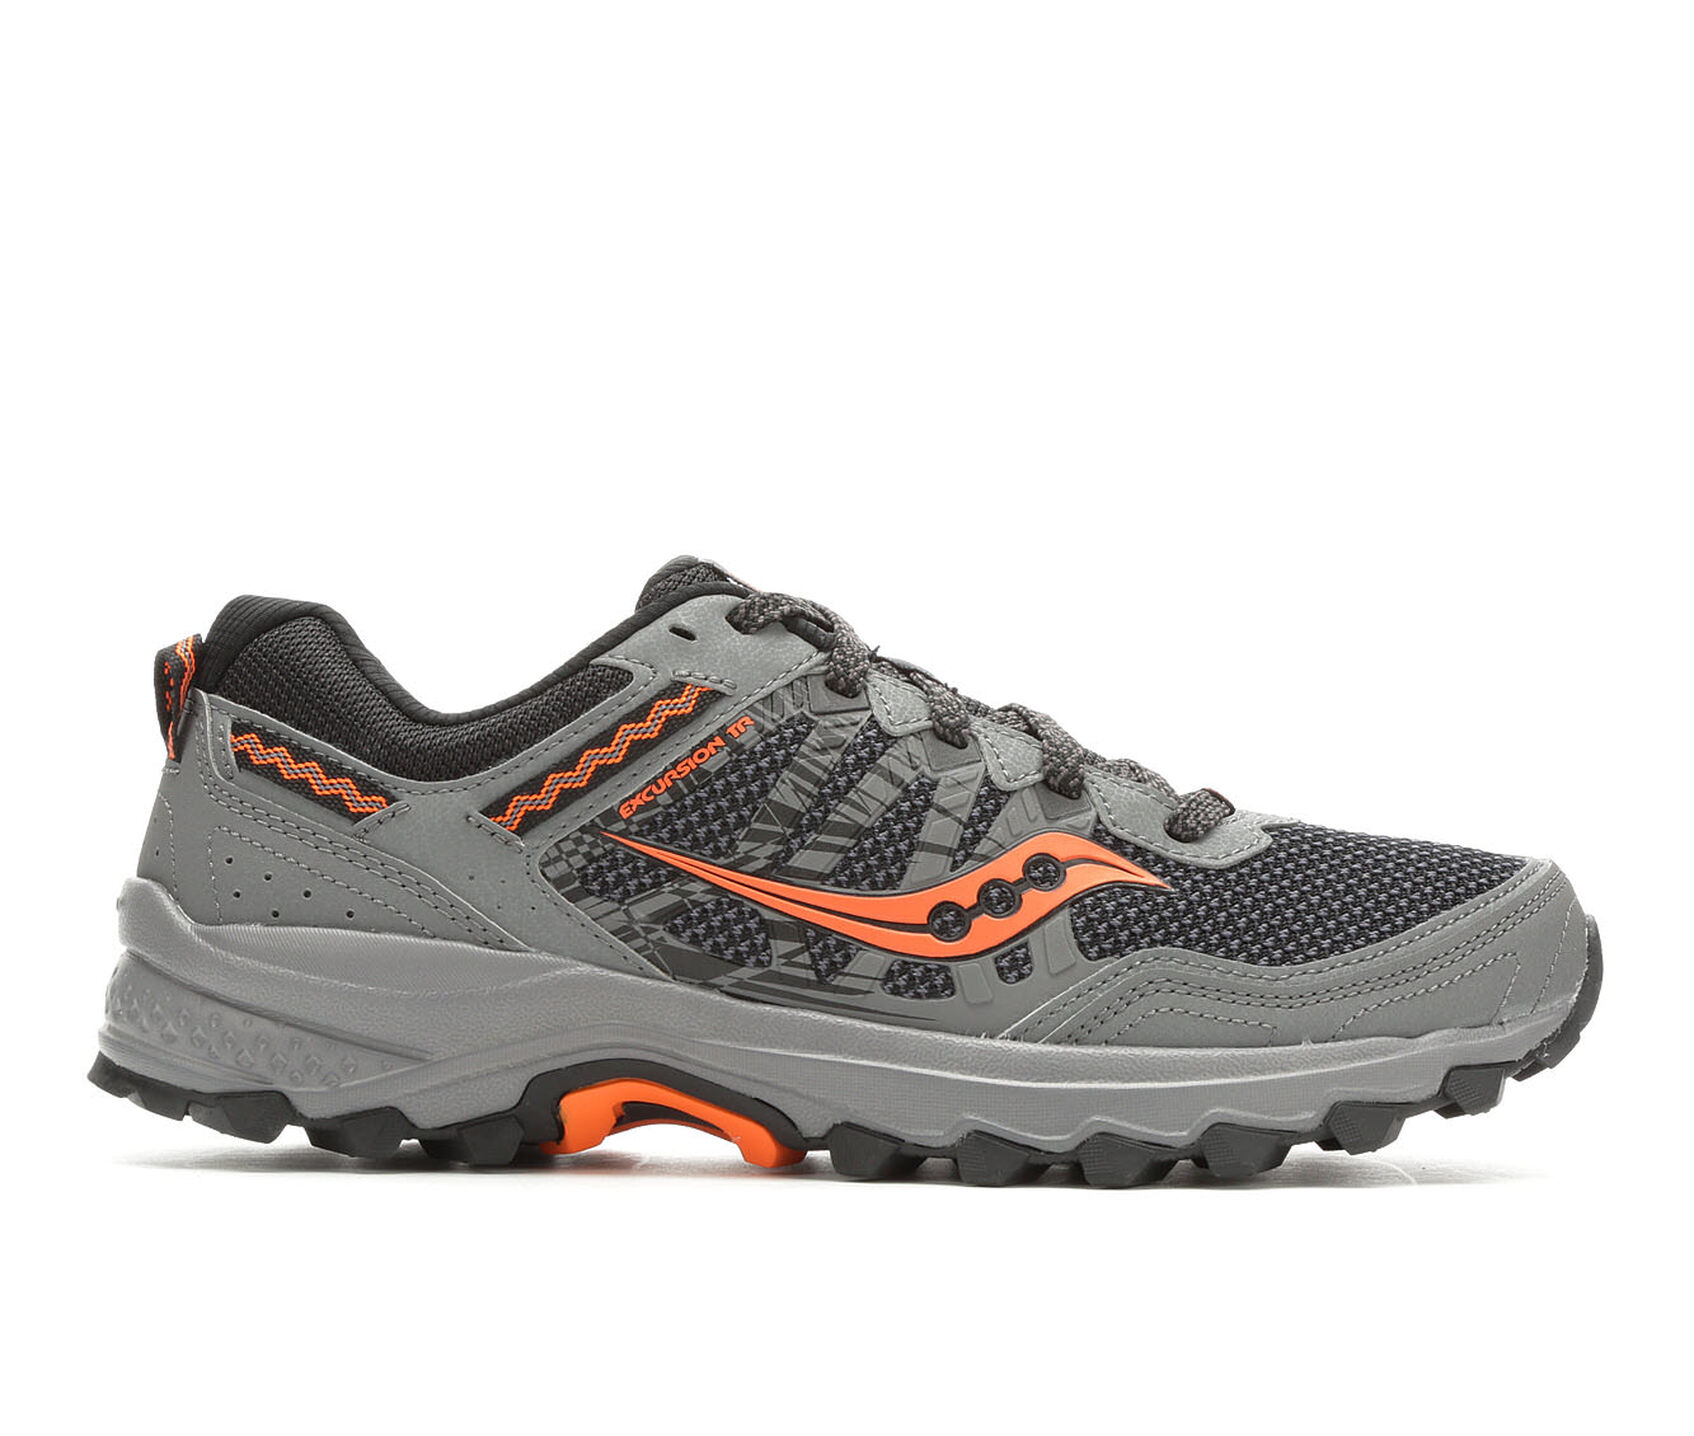 652501cd26 Men's Saucony Excursion TR12 Trail Running Shoes | Shoe Carnival